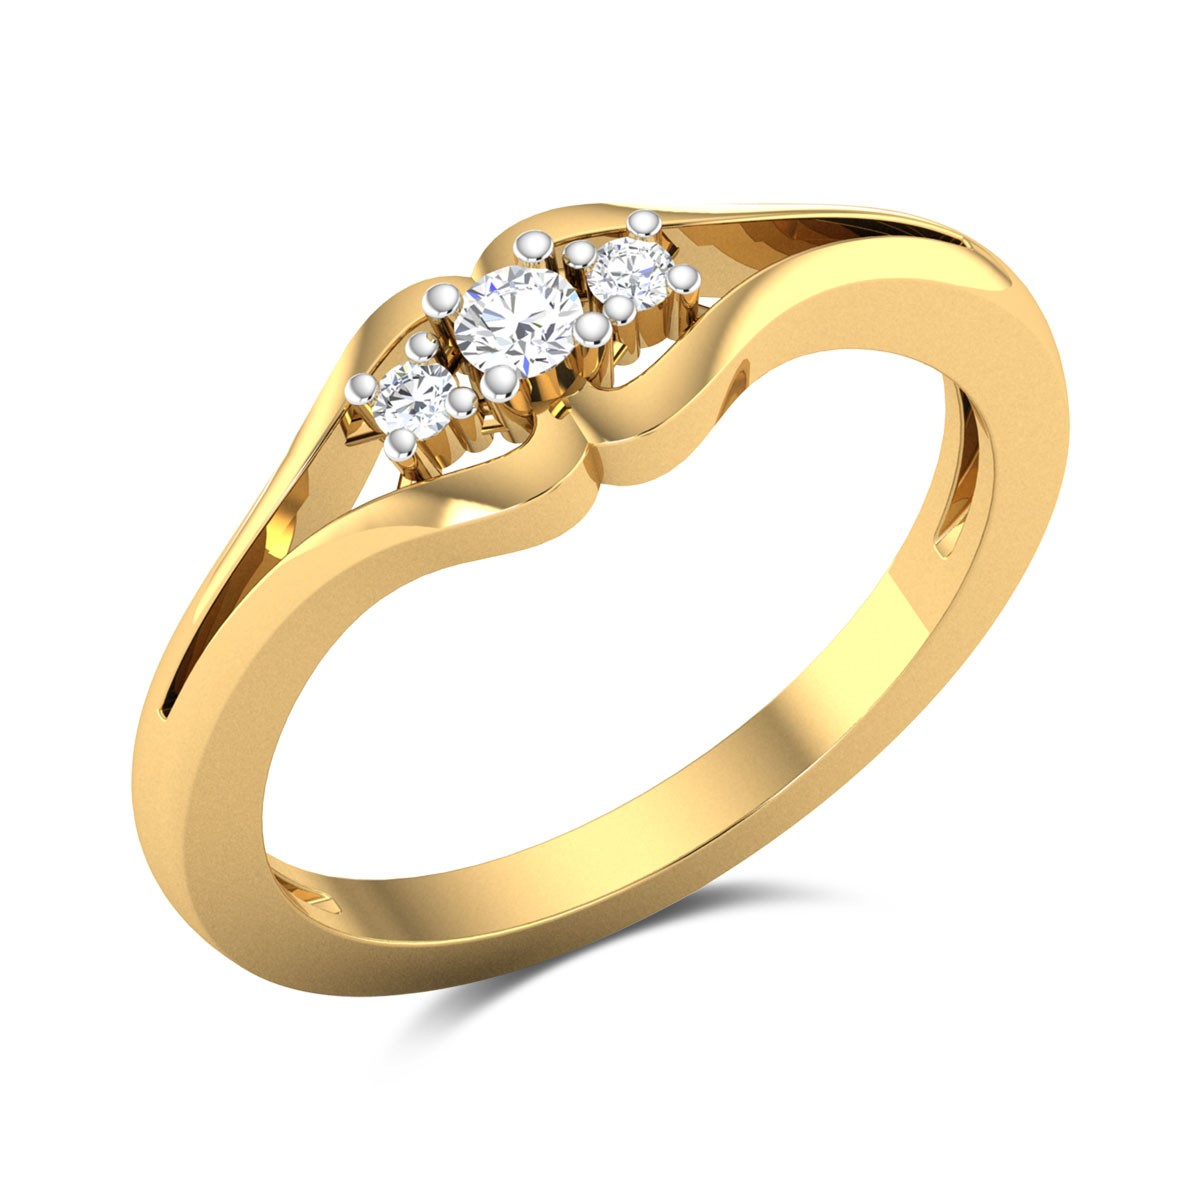 Buy Silvia Diamond Ring In 2.48 Gms Gold Online